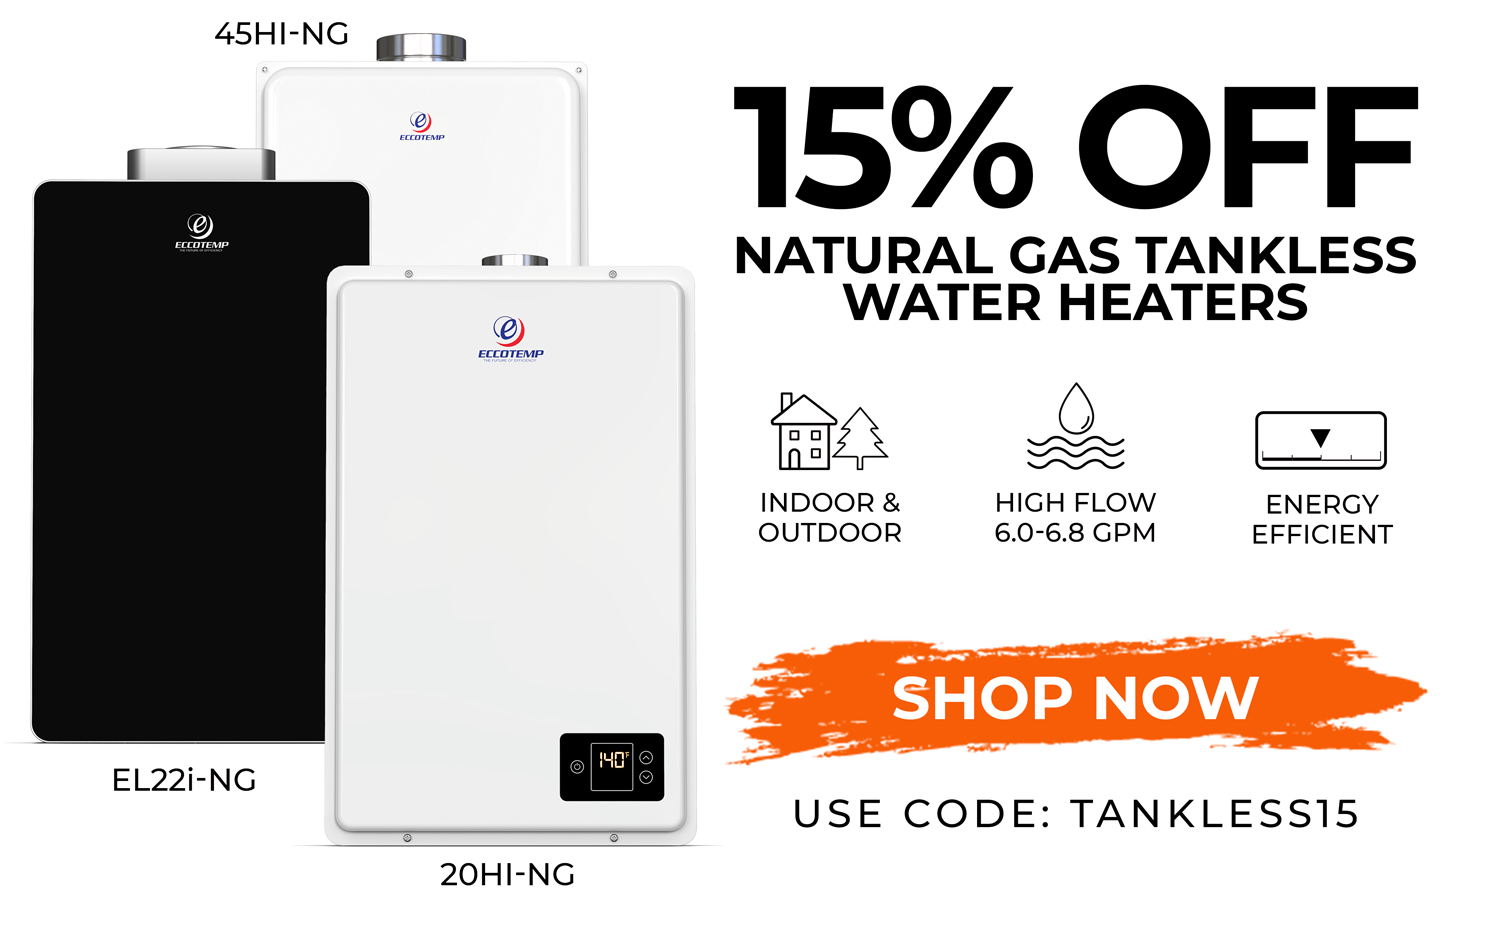 natural-gas-email-ca-02.jpg